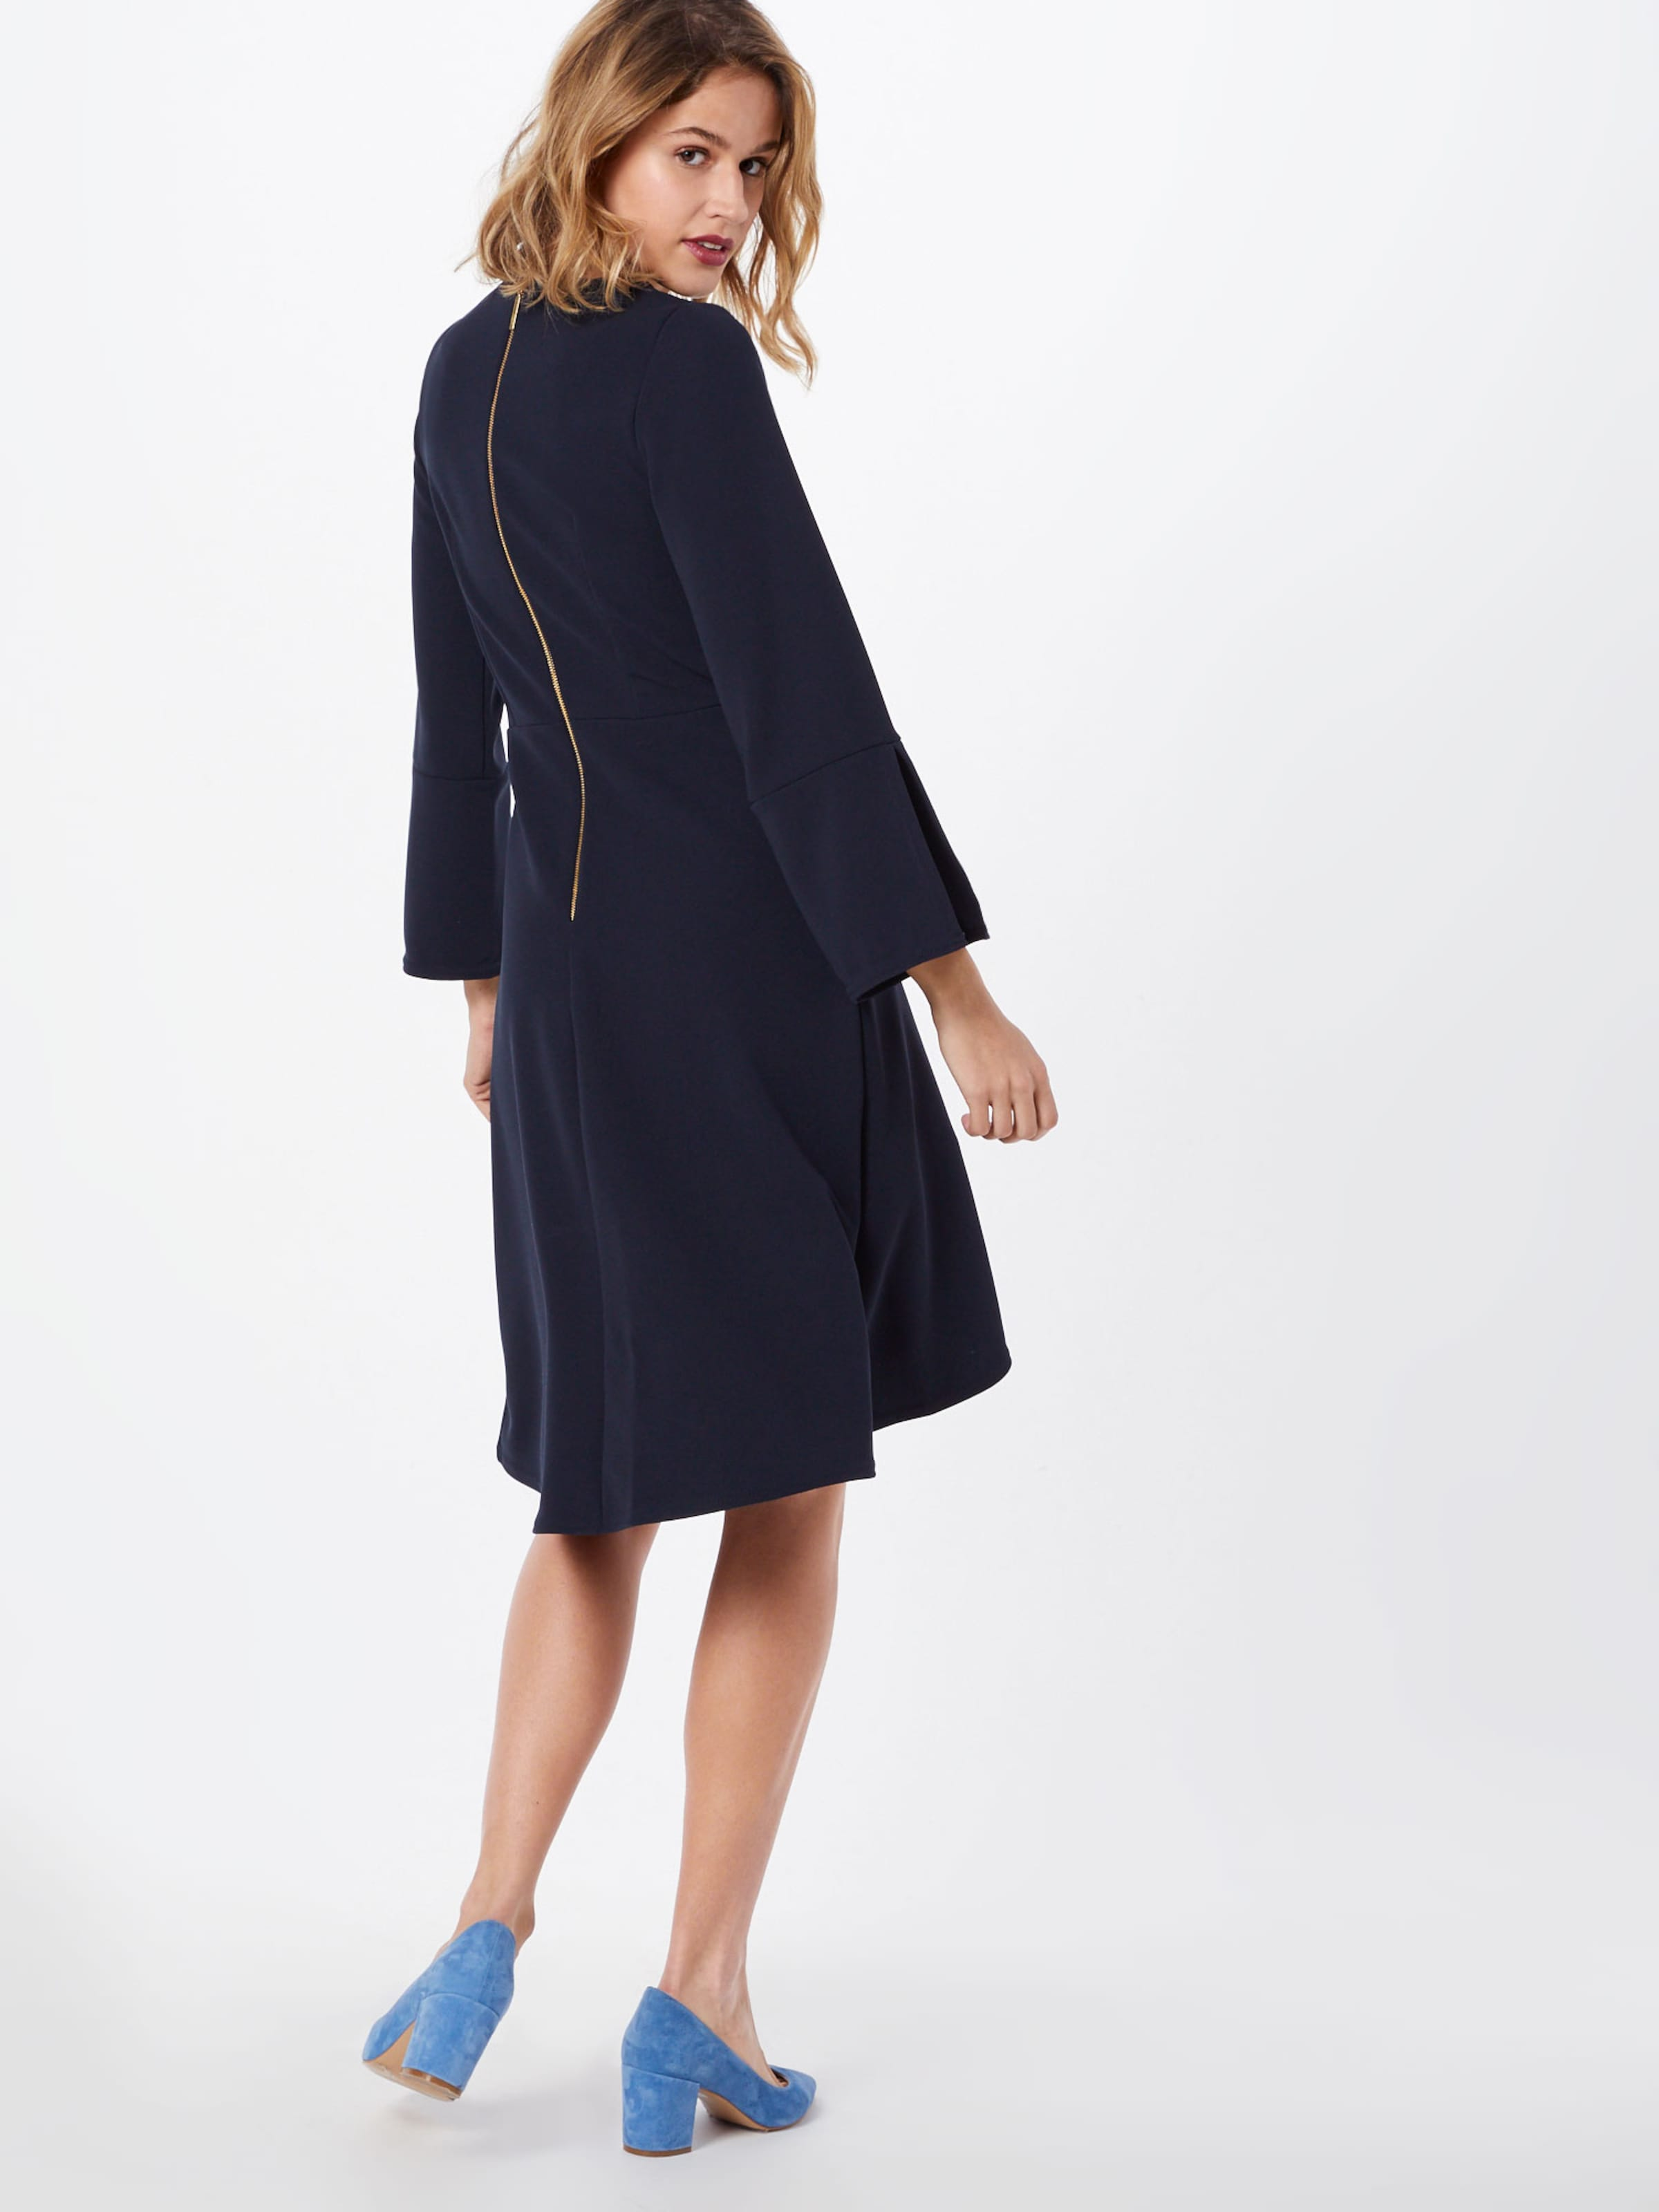 Closet En Bleu London Marine Robe e29bEDWHYI